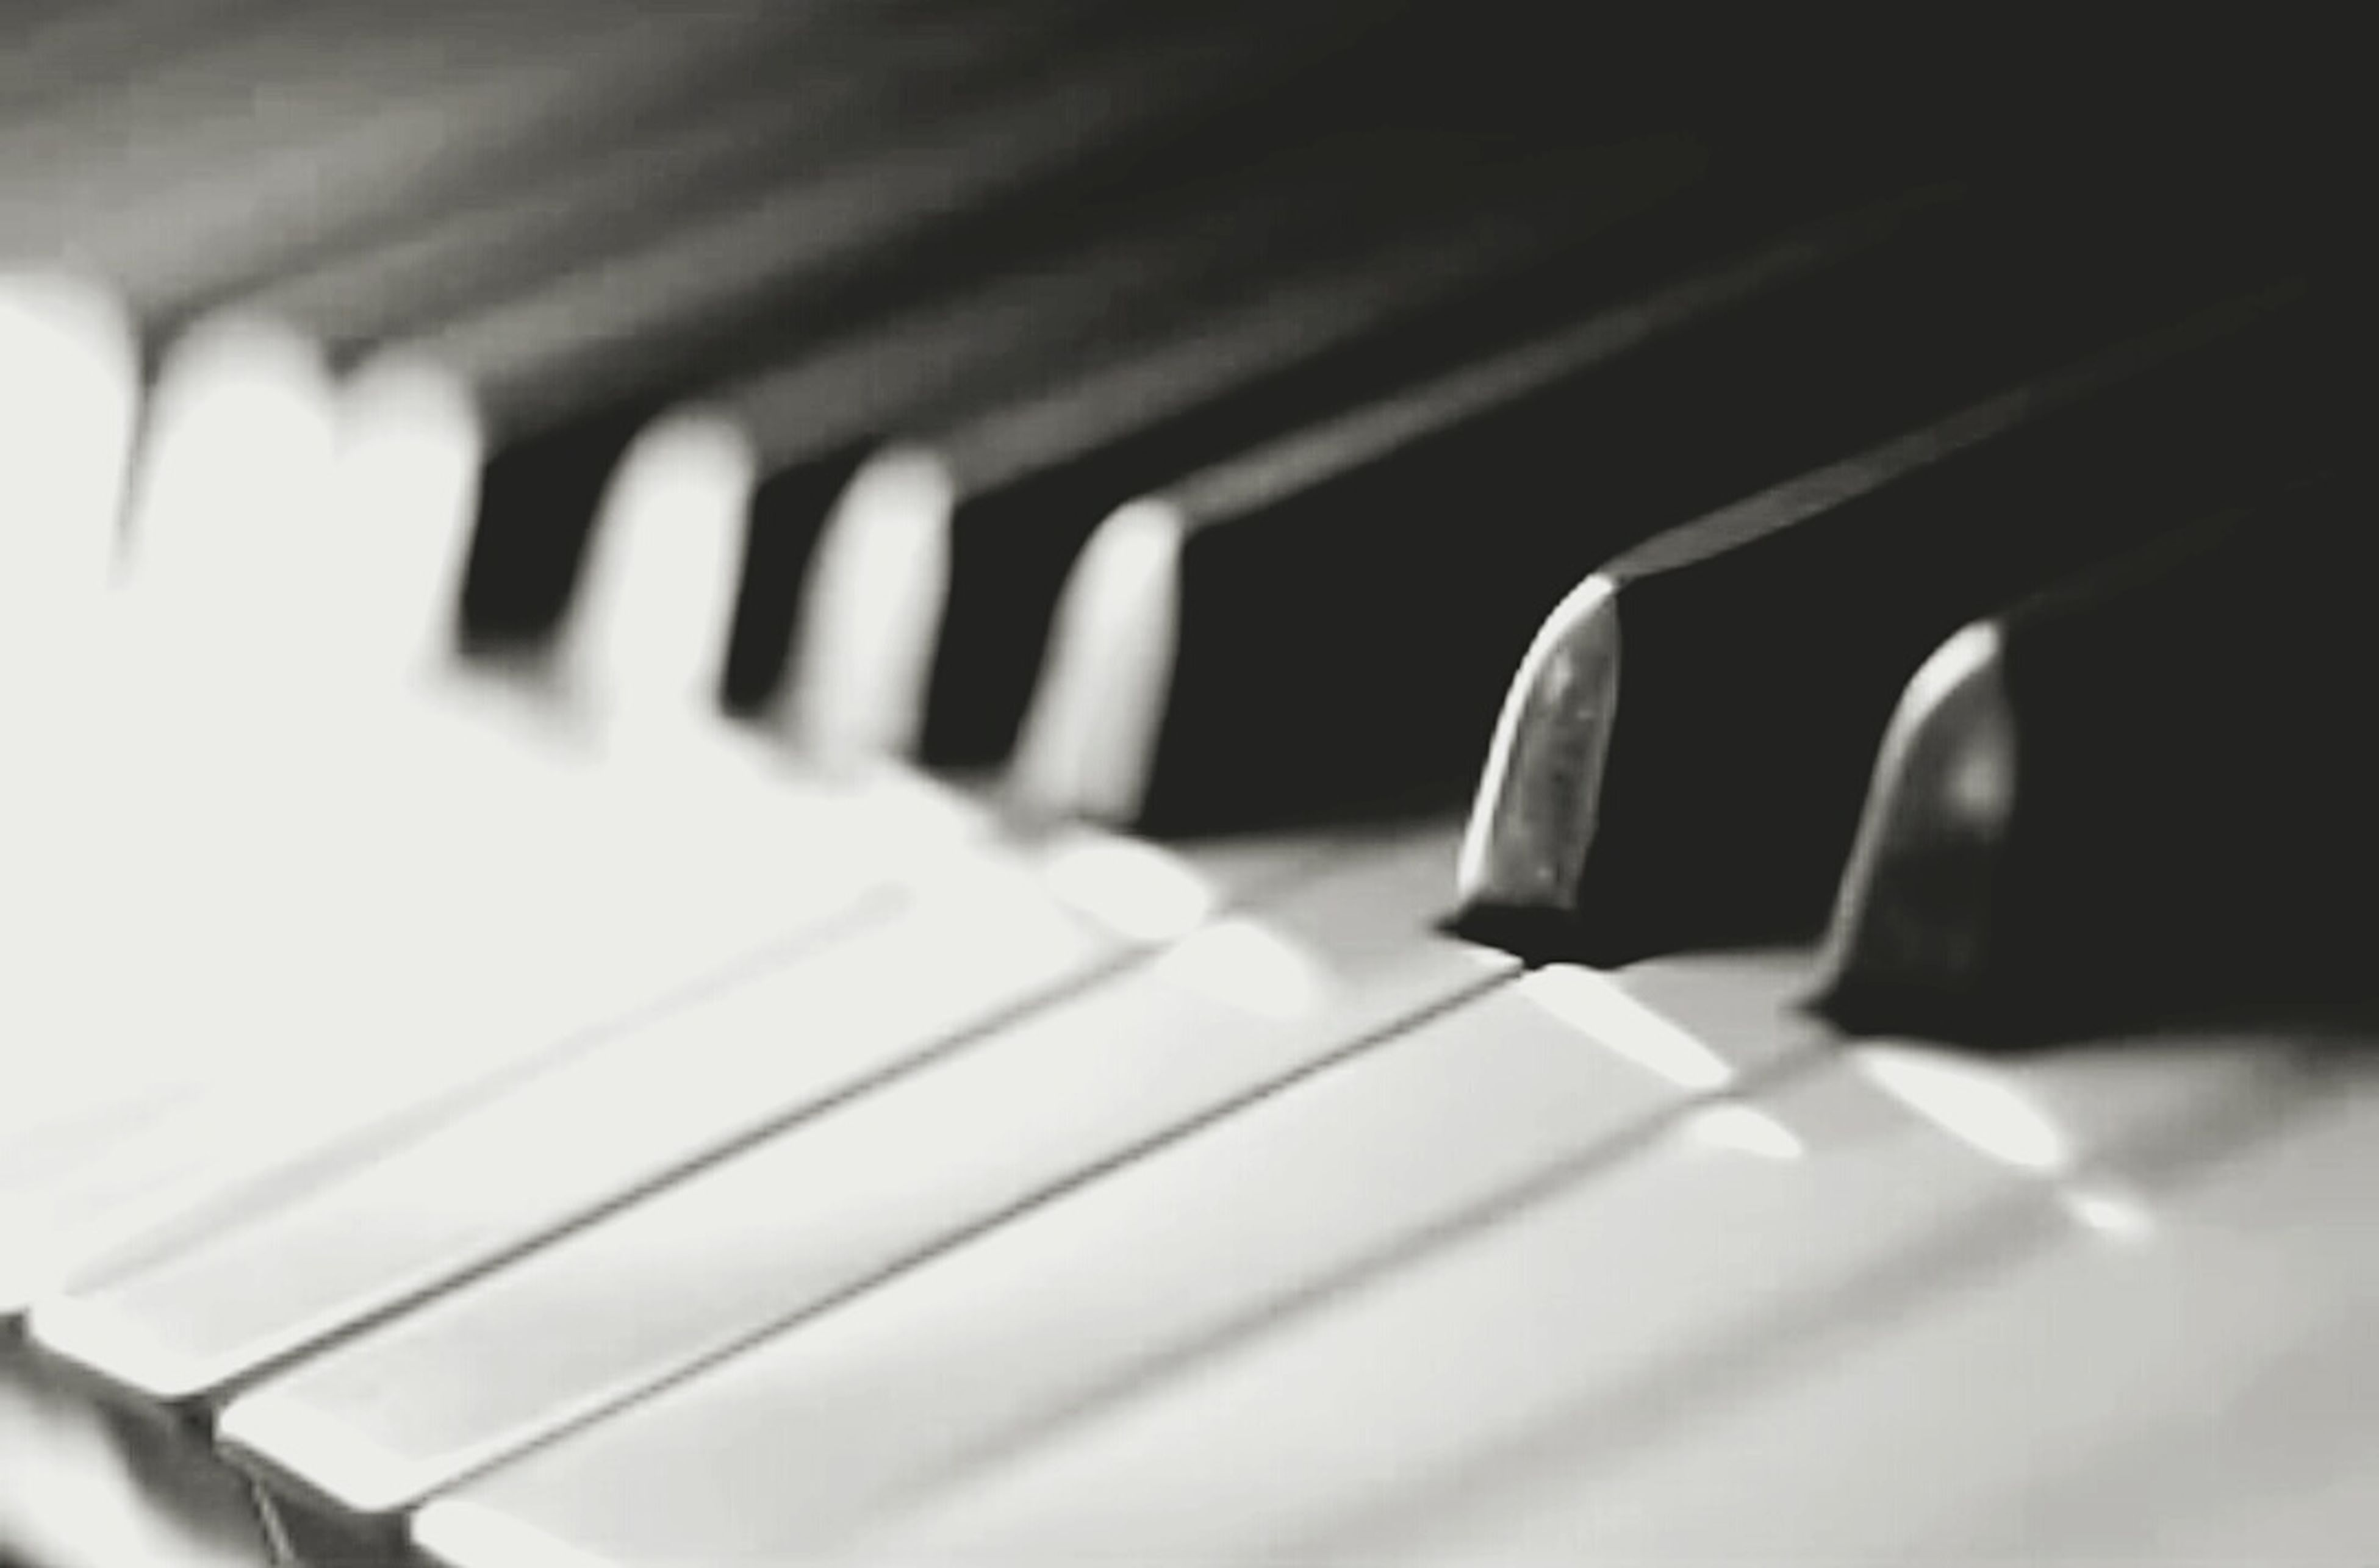 indoors, close-up, selective focus, in a row, music, piano key, arts culture and entertainment, focus on foreground, musical instrument, piano, repetition, still life, no people, part of, white color, pattern, detail, musical equipment, empty, shadow